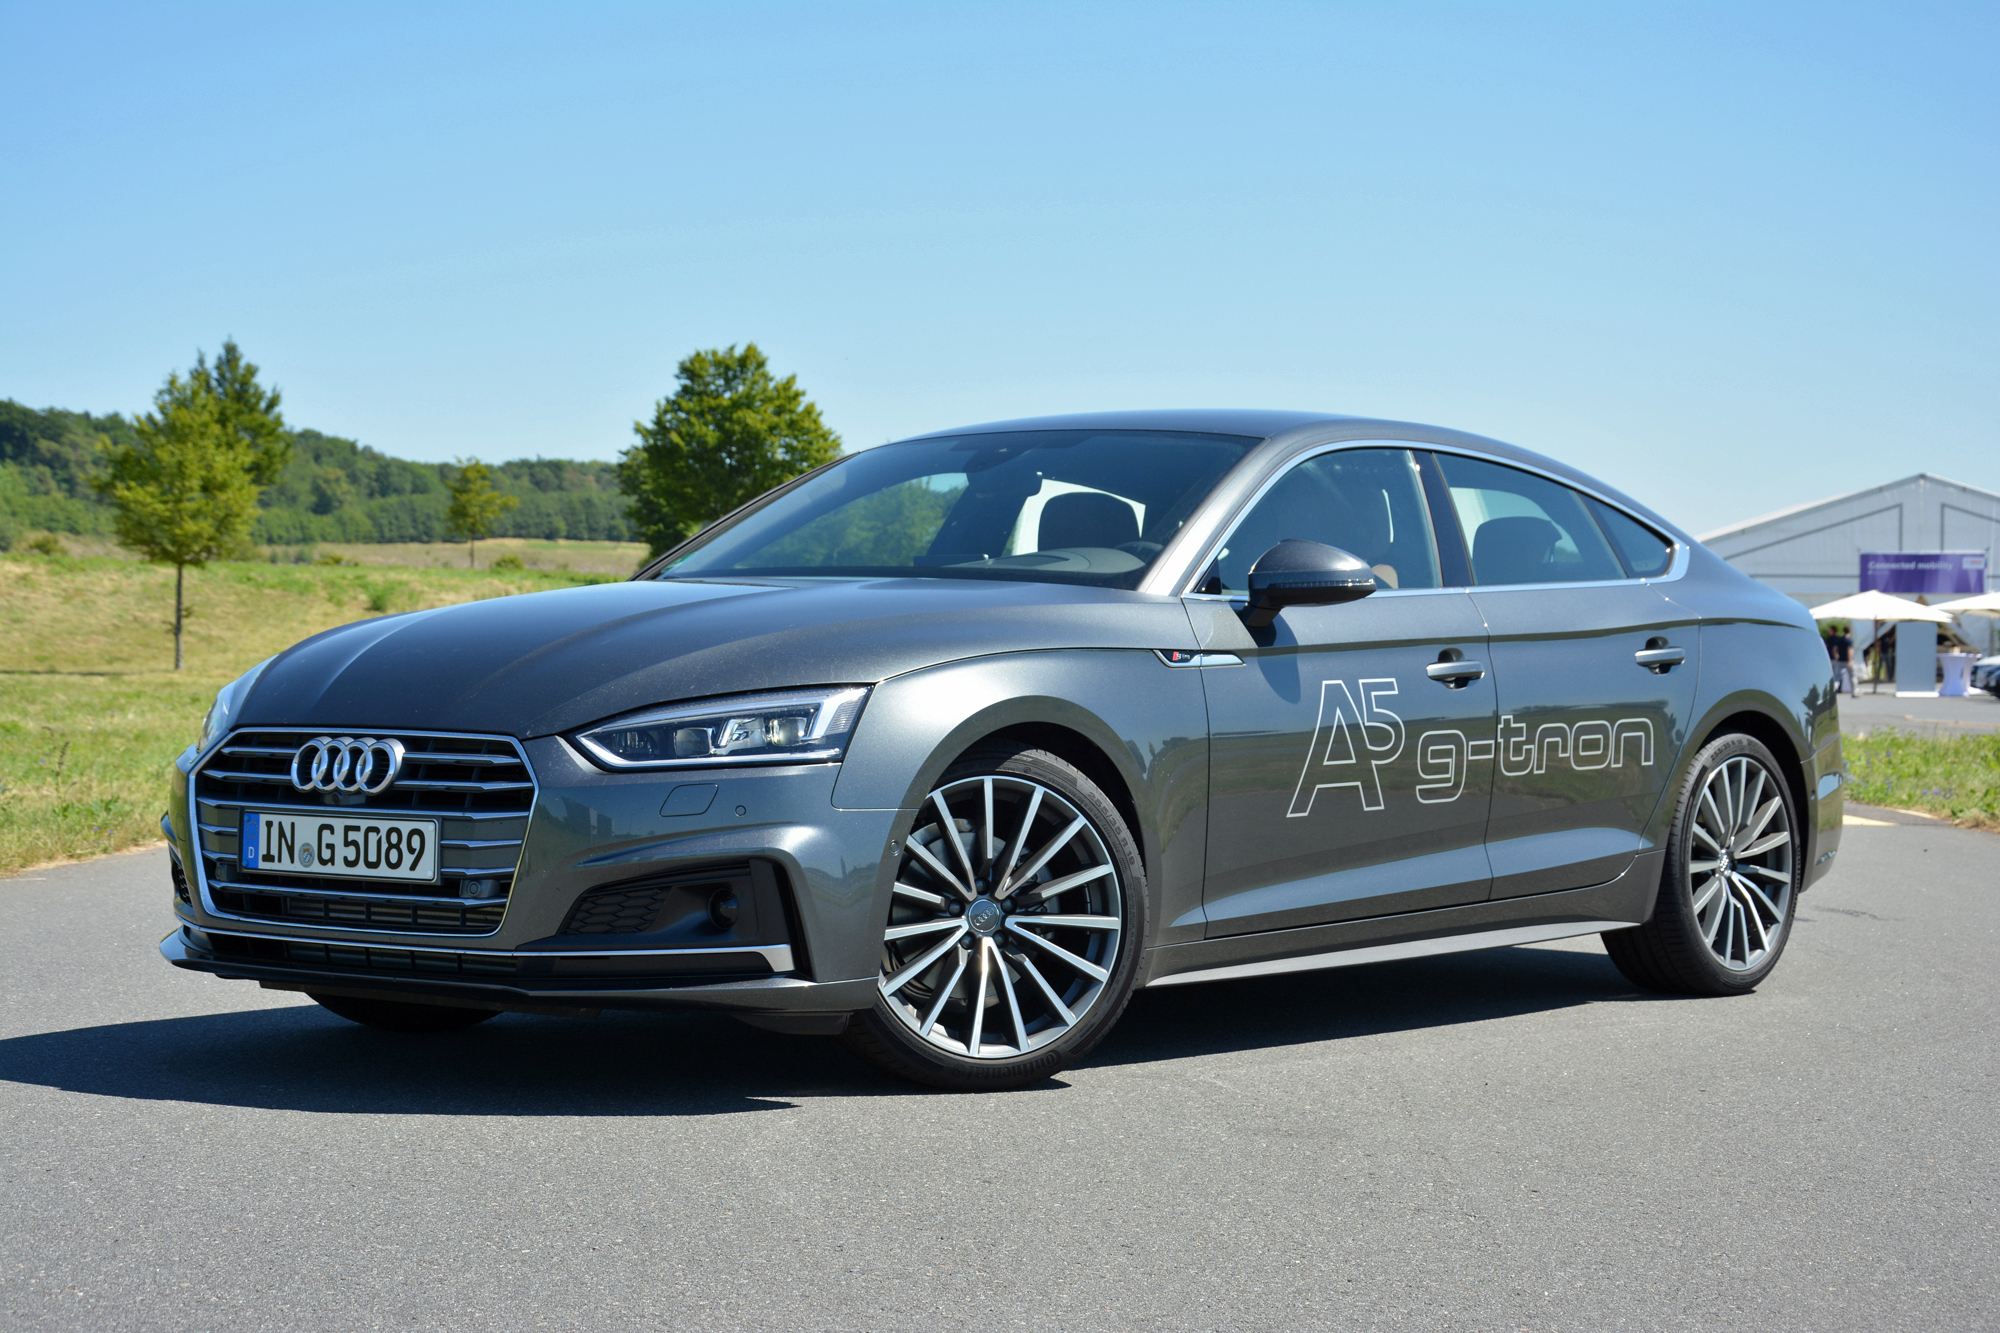 Audi A5 Sportback g-tron: first drive of natural-gas luxury sport sedan